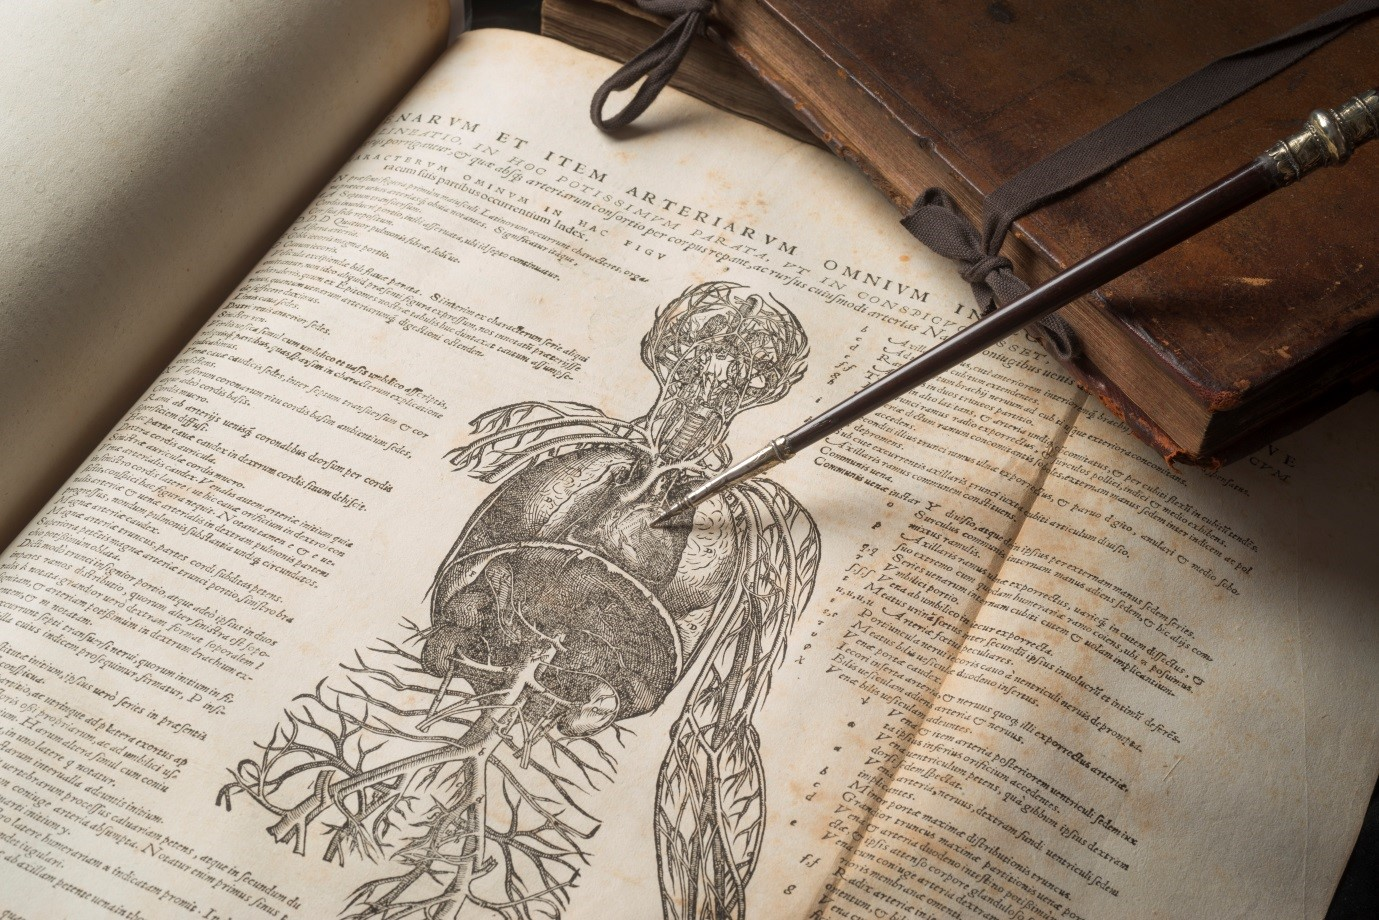 Vesalius work on human anatomy of 1543